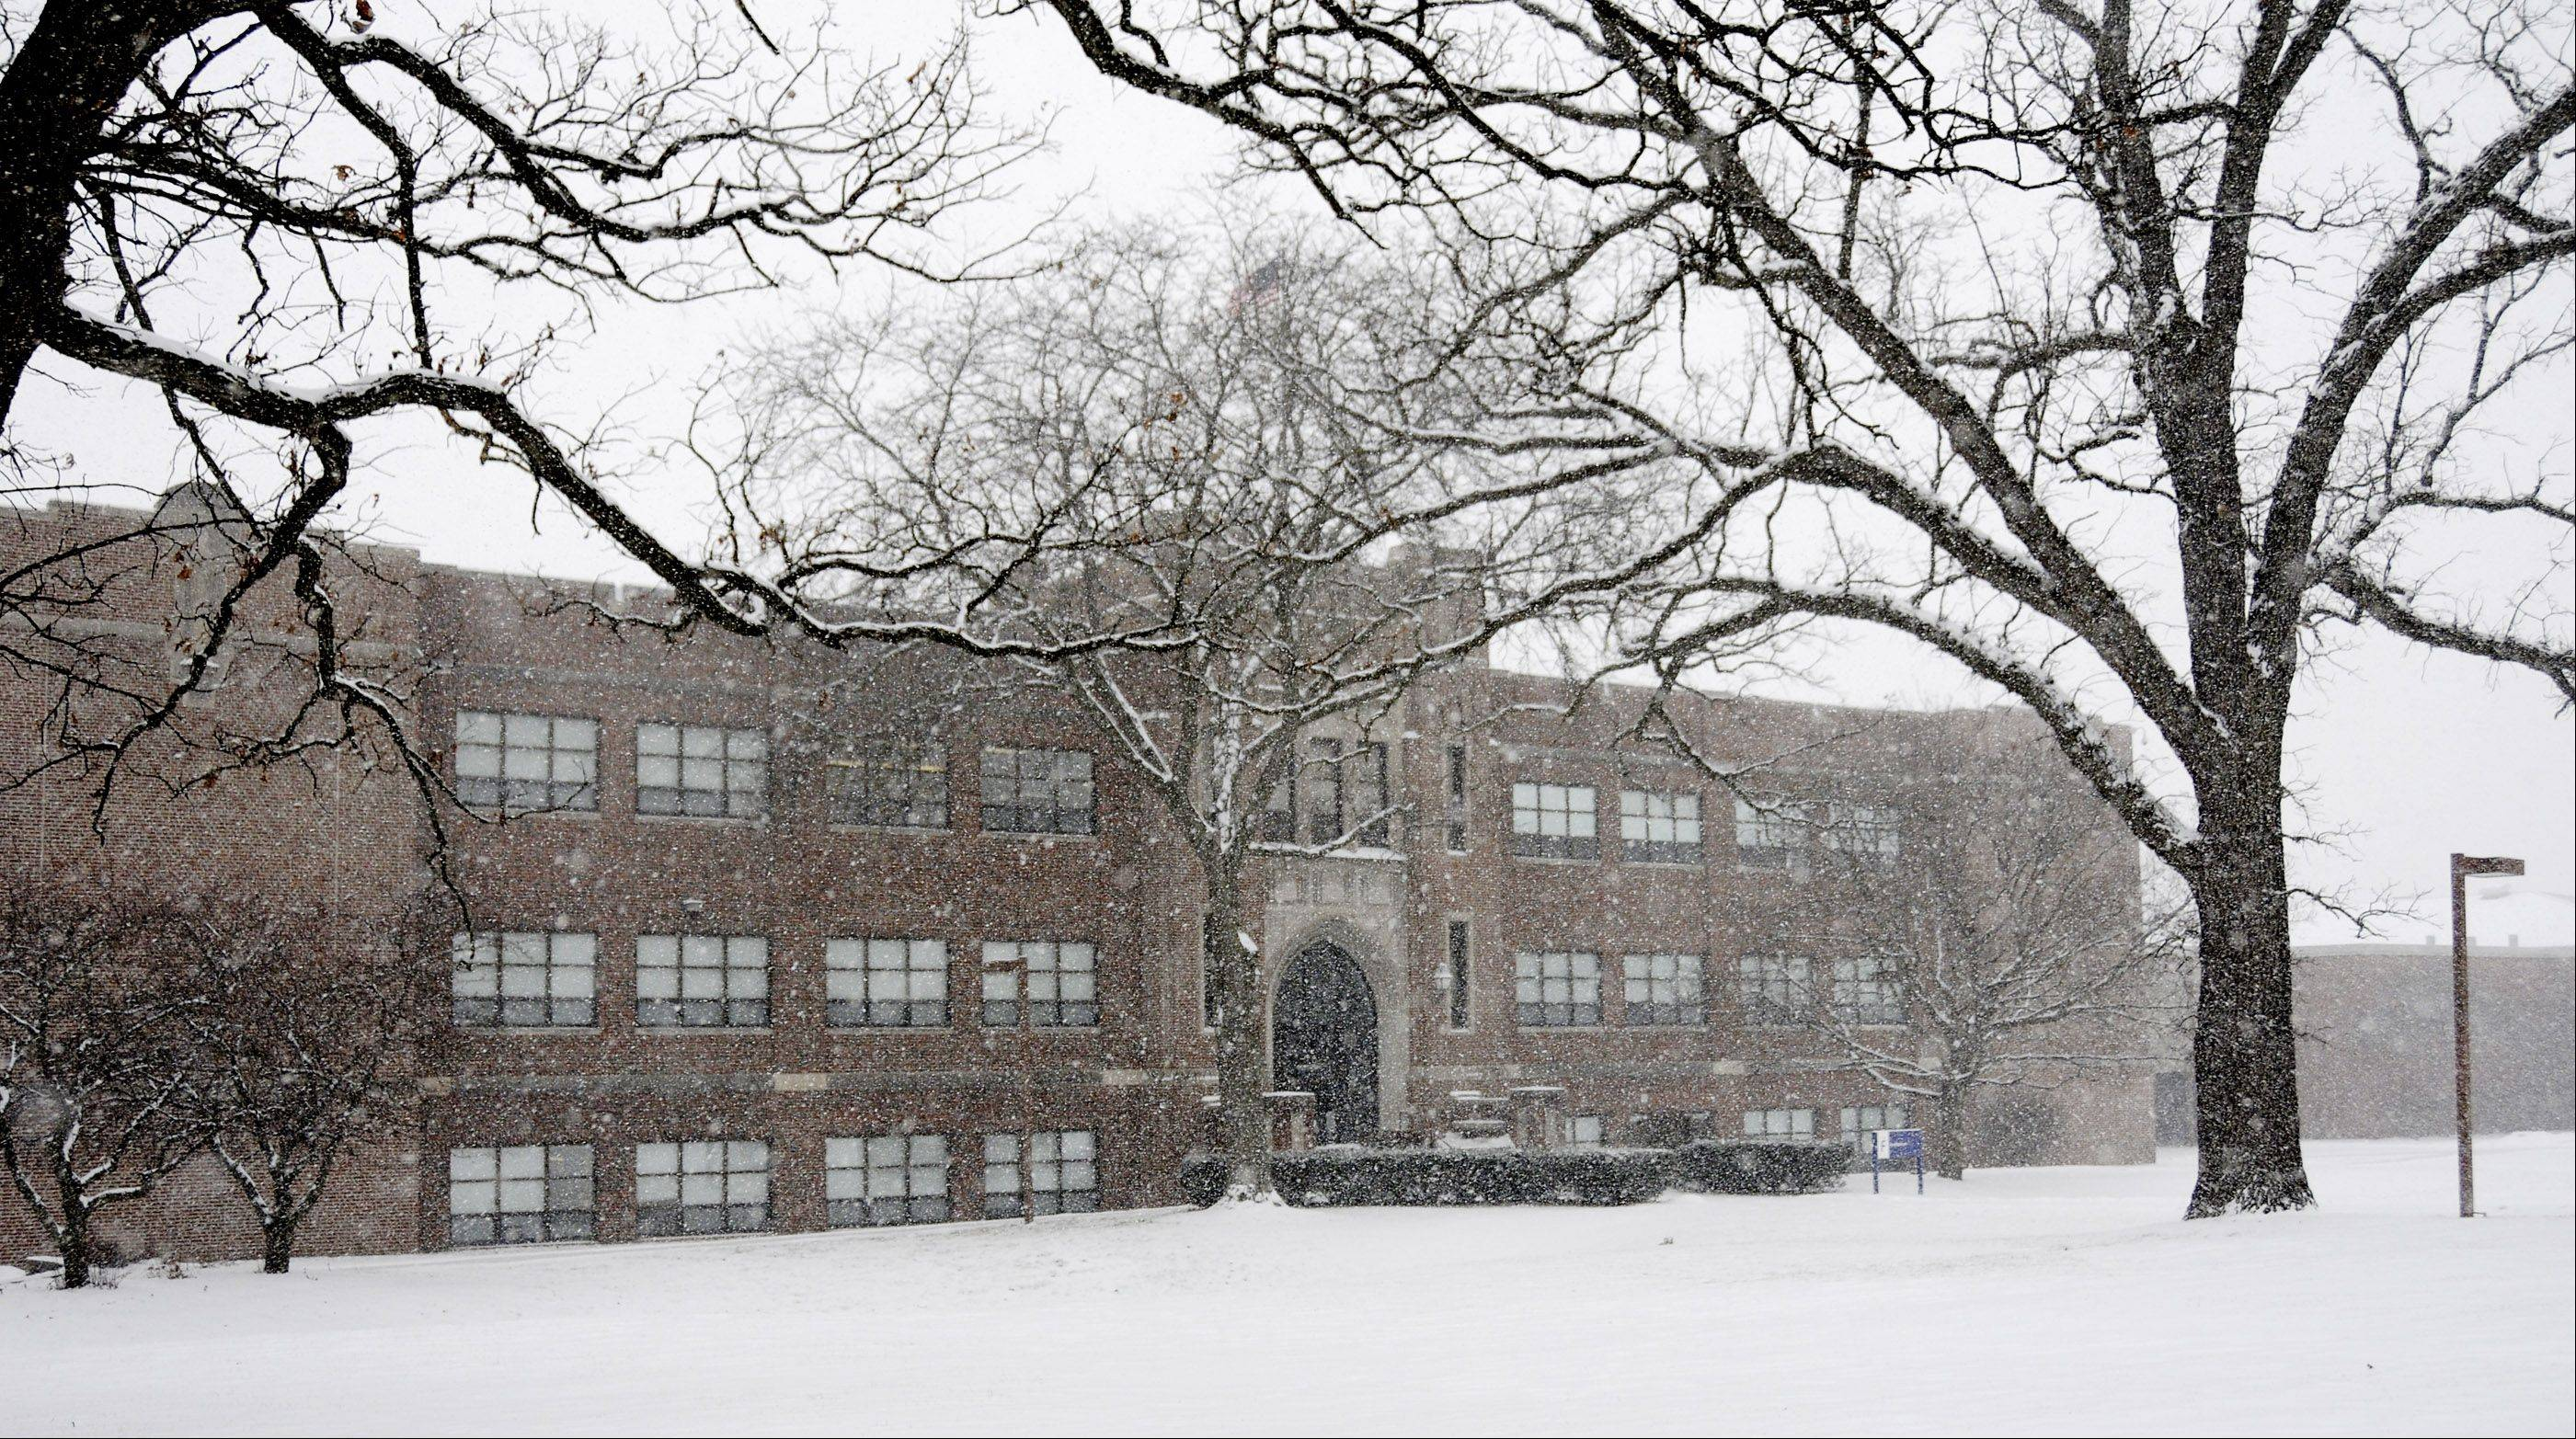 Teachers and administrators at West Chicago's Community High School have reached a tentative contract agreement after nearly 11 months of negotiations.